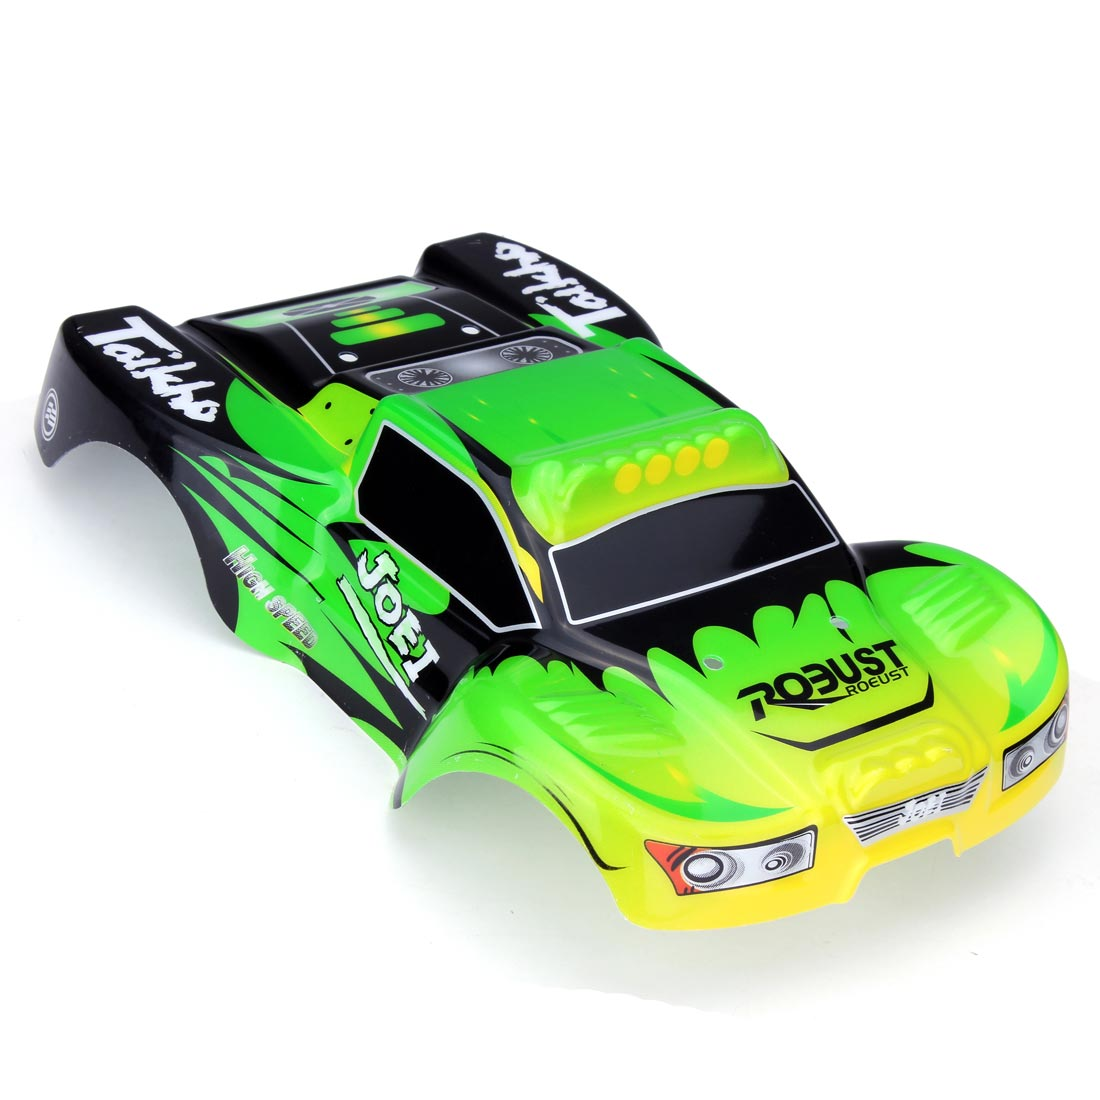 New WLToys Wltoys A969 Rc Car Spare Parts Covers 1/18 Remote Control Car accessories Canopy A969-06 A969-07 Car Body Shell(China (Mainland))